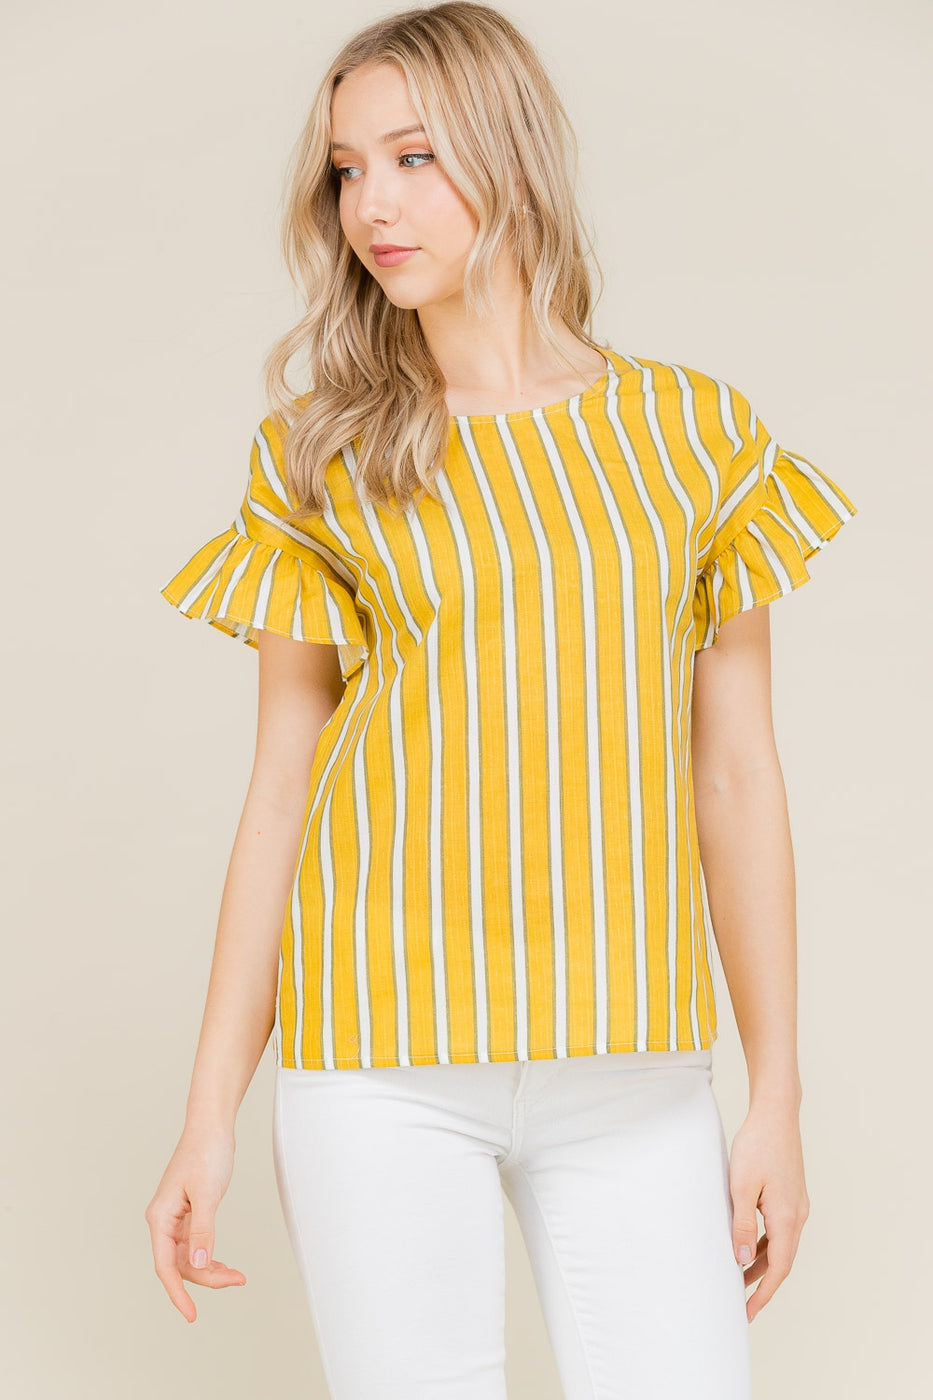 Short Sleeve Stripe Top Ruffle In Mustard Siin Bees